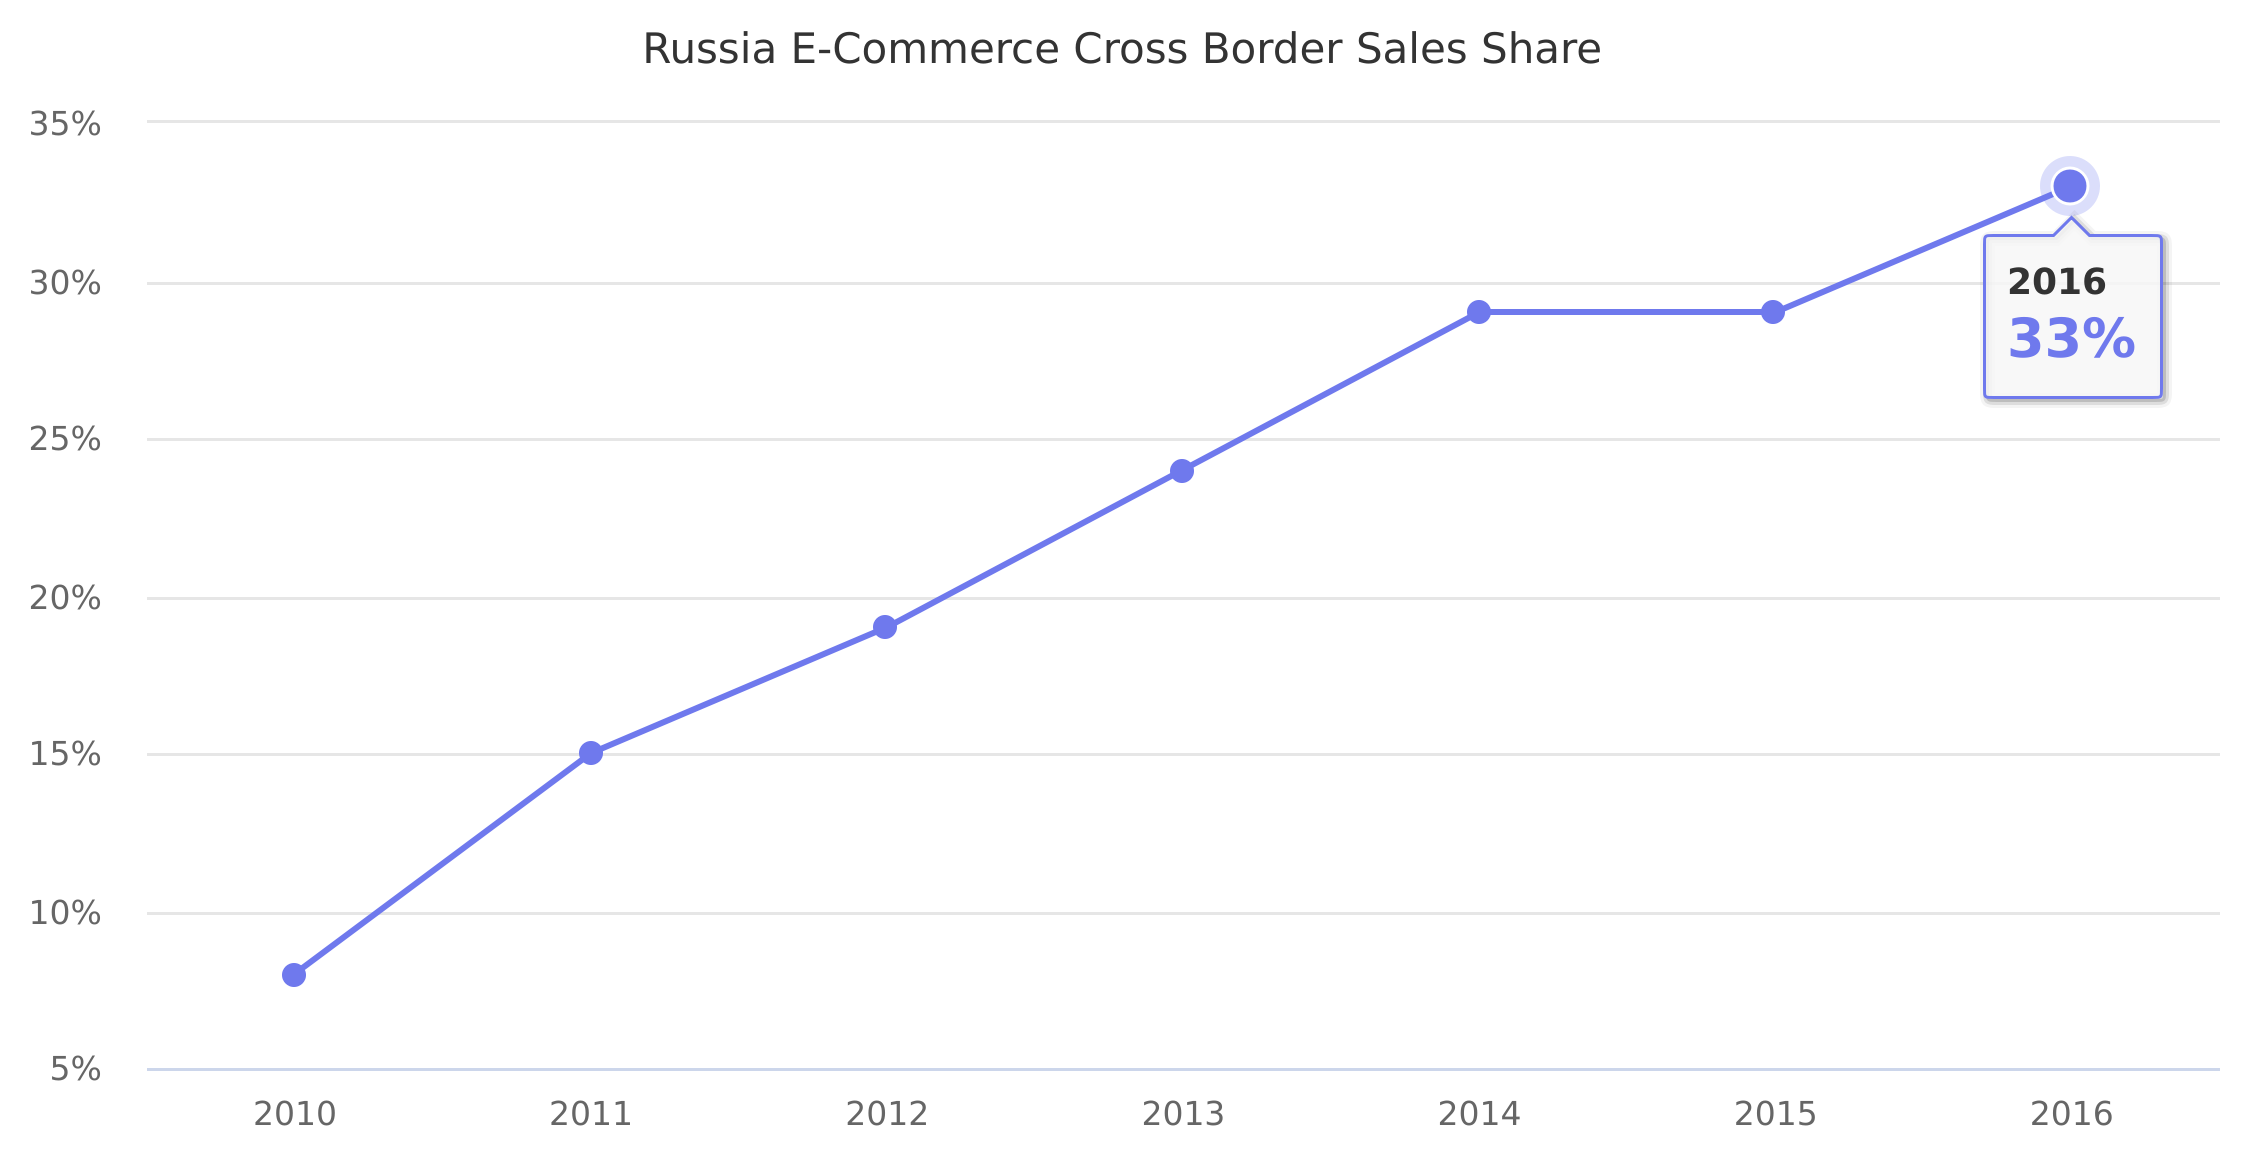 Russia E-Commerce Cross Border Sales Share 2010-2016